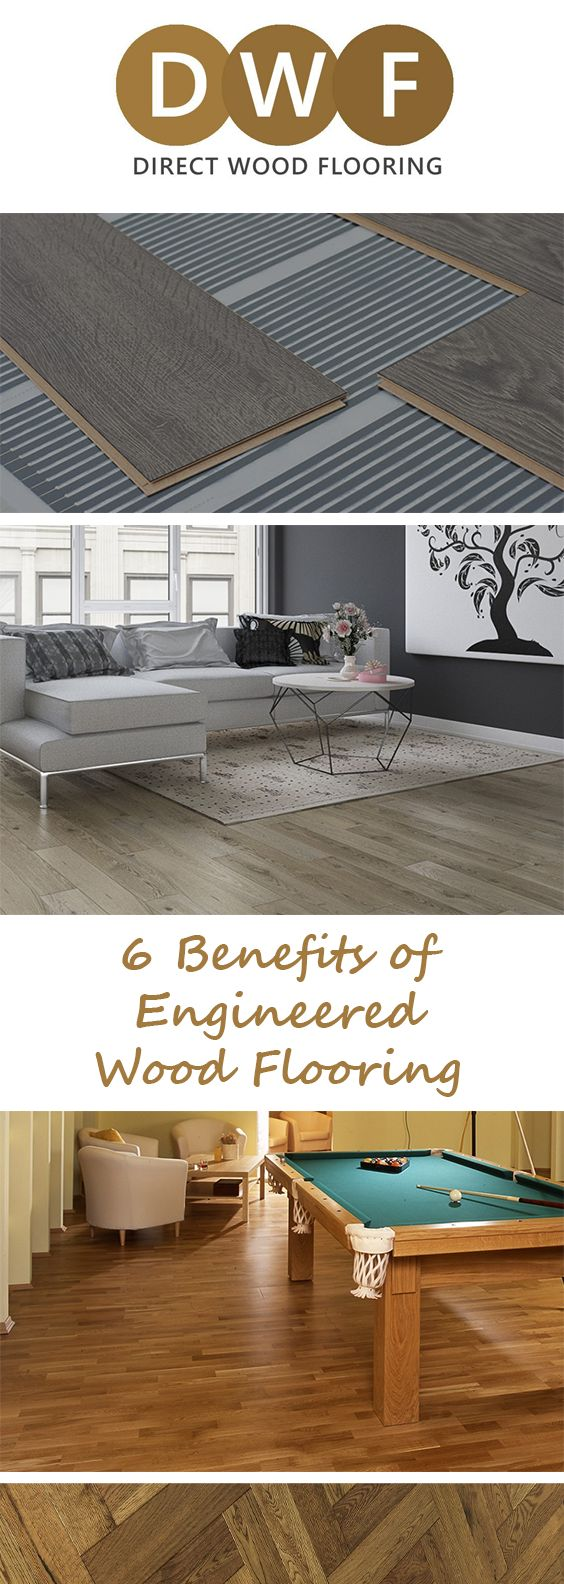 1⃣ Engineered Wood Flooring's durability makes it perfect for kitchens.  2⃣, 3⃣, 4⃣, 5⃣, 6⃣❓  Check out our most recent blog for 6 benefits of Engineered Wood Flooring!